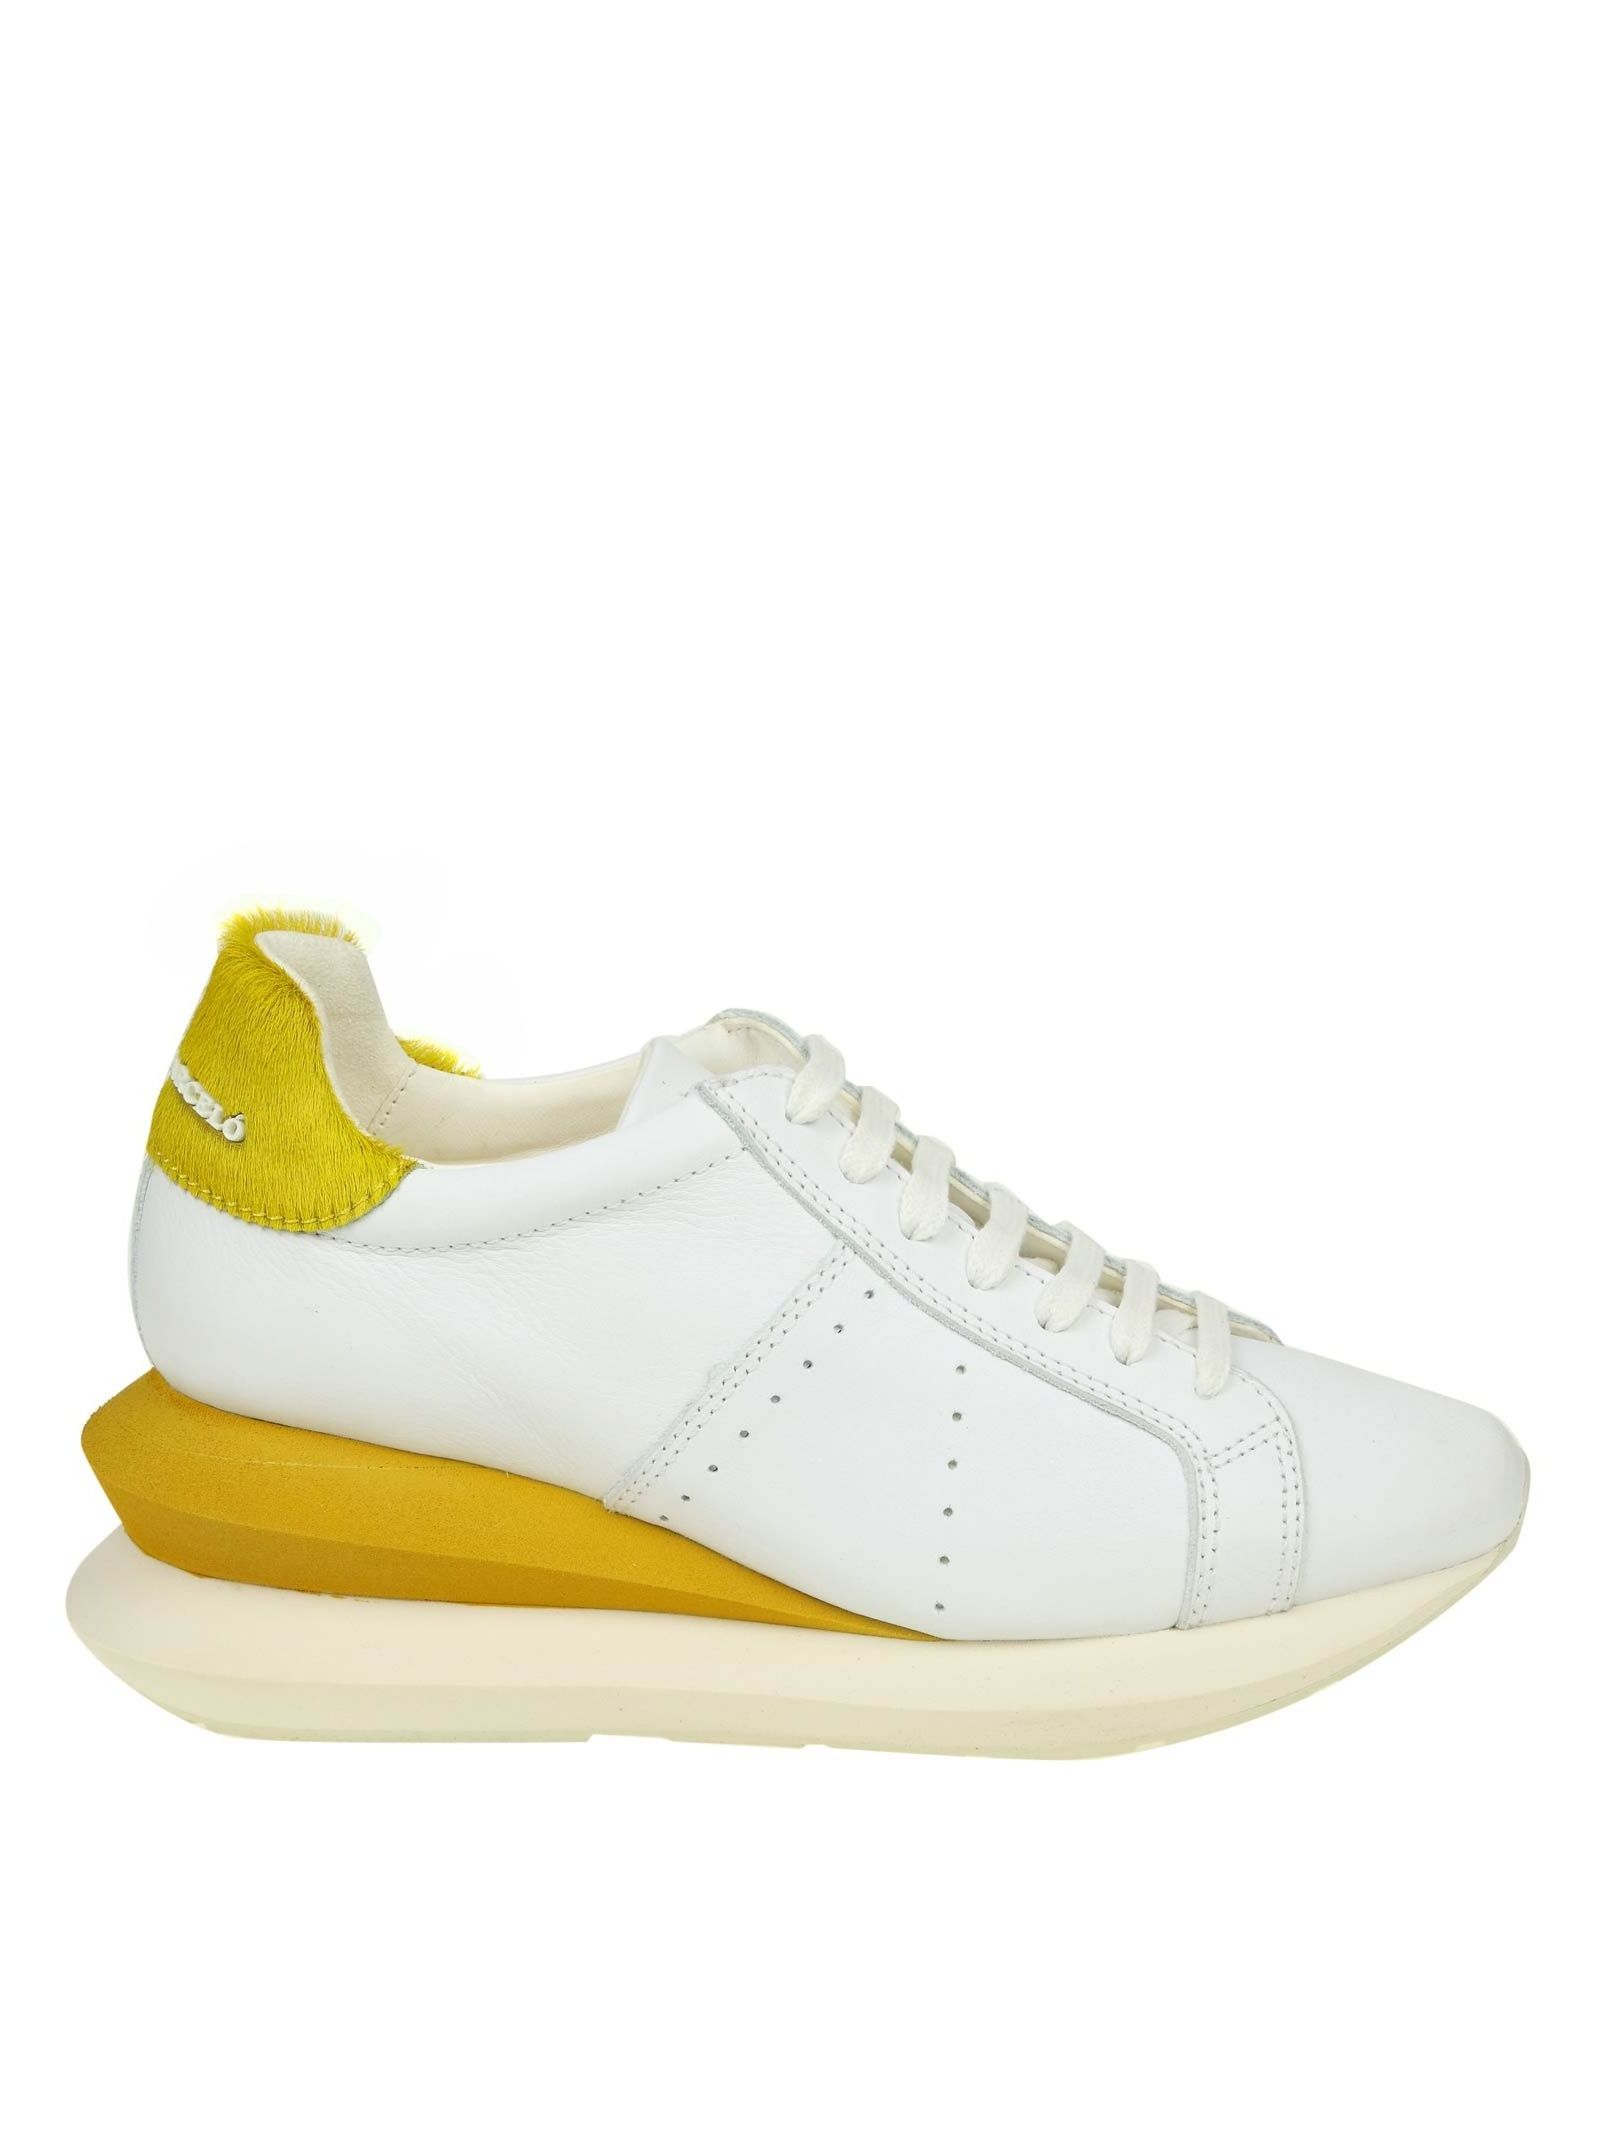 Manuel Barcelo' Sneakers Shoe In White Leather in White/Yellow